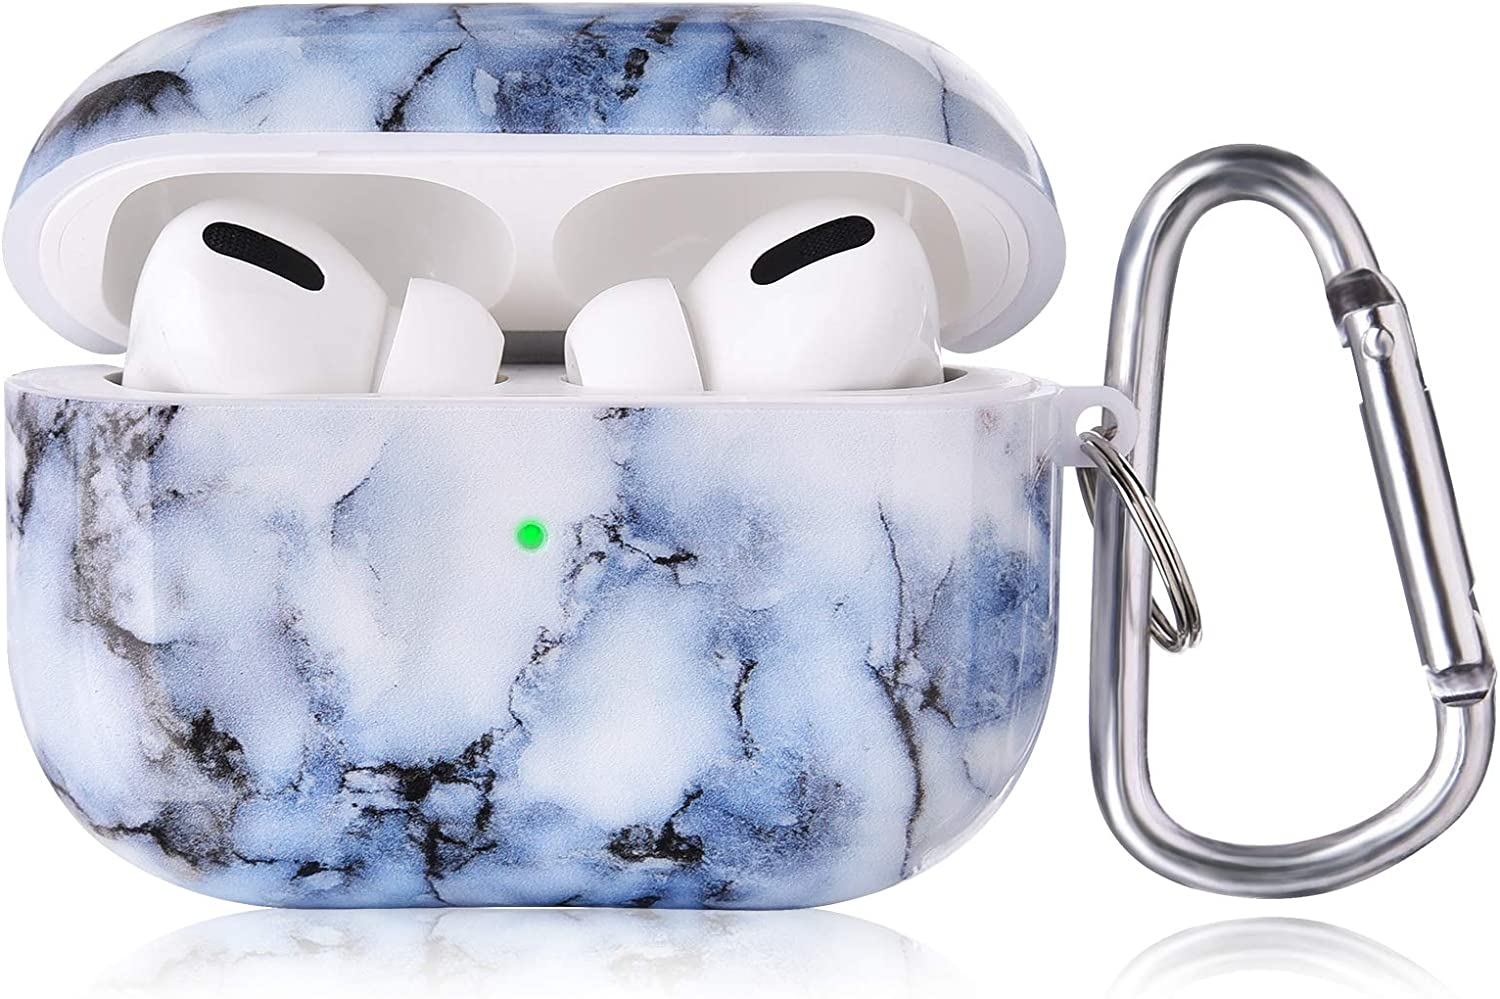 KOREDA for Airpods Pro Case Cover, Cute Protective Hard Case for Girls Women Men Airpods Accessories Portable & Shockproof for Apple Airpods Pro Charging Case with Keychain/Strap (Blue White Marble)